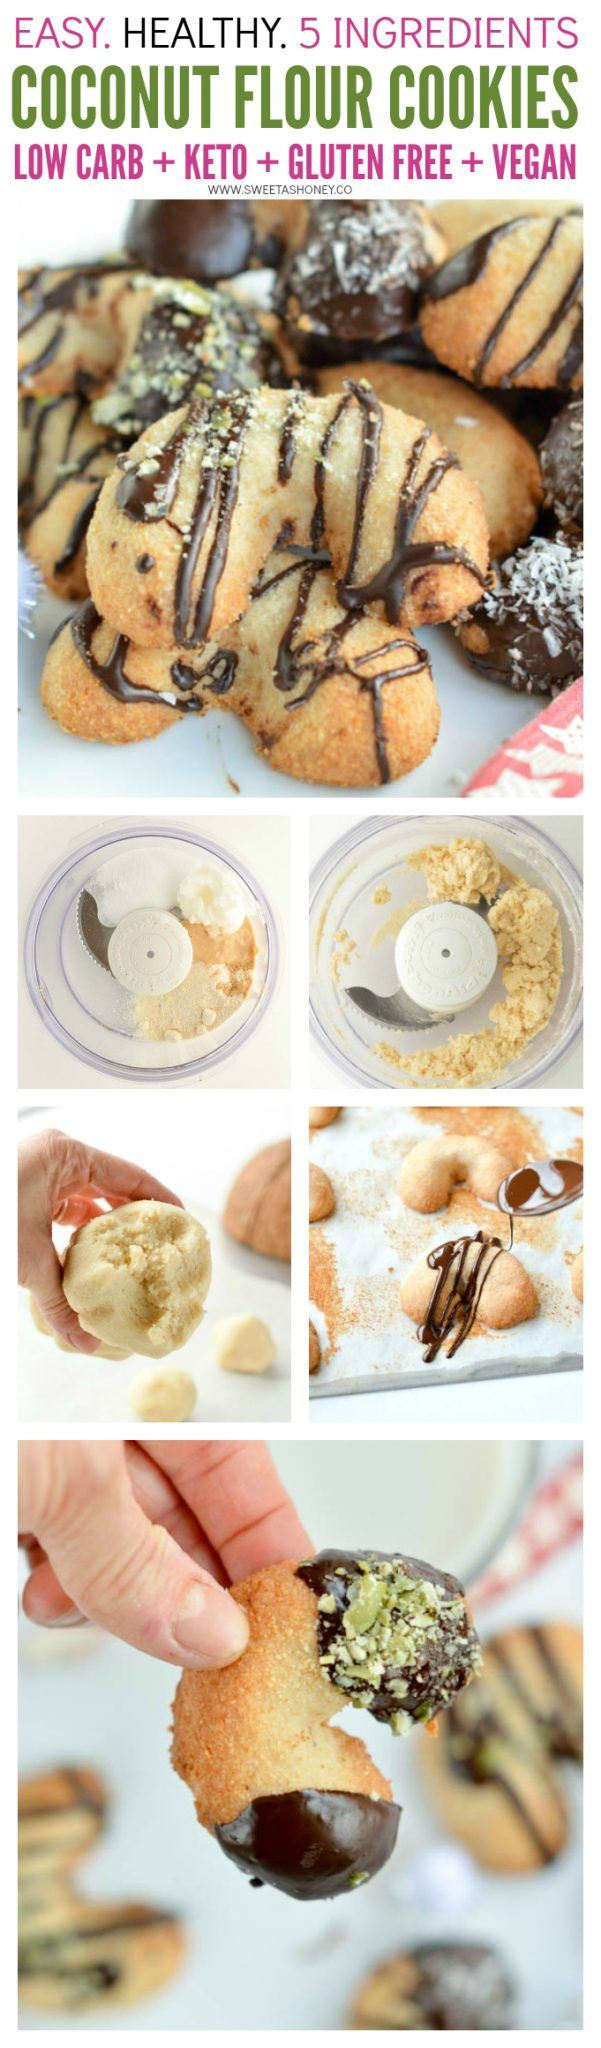 Coconut Flour Cookies no Sugar. Don't blow your diet this Christmas! Whatever you eat keto, low carb, paleo or vegan those coconut flour cookies no sugar (yes, they are 100% sugar free ) are the healthy Christmas cookies you need to makes everyone happy. You won't miss your classic shortbread cookies, those have the exact same texture - they melt in your mouth with a heavenly buttery vanilla flavor - without the carbs, butter or sugar.